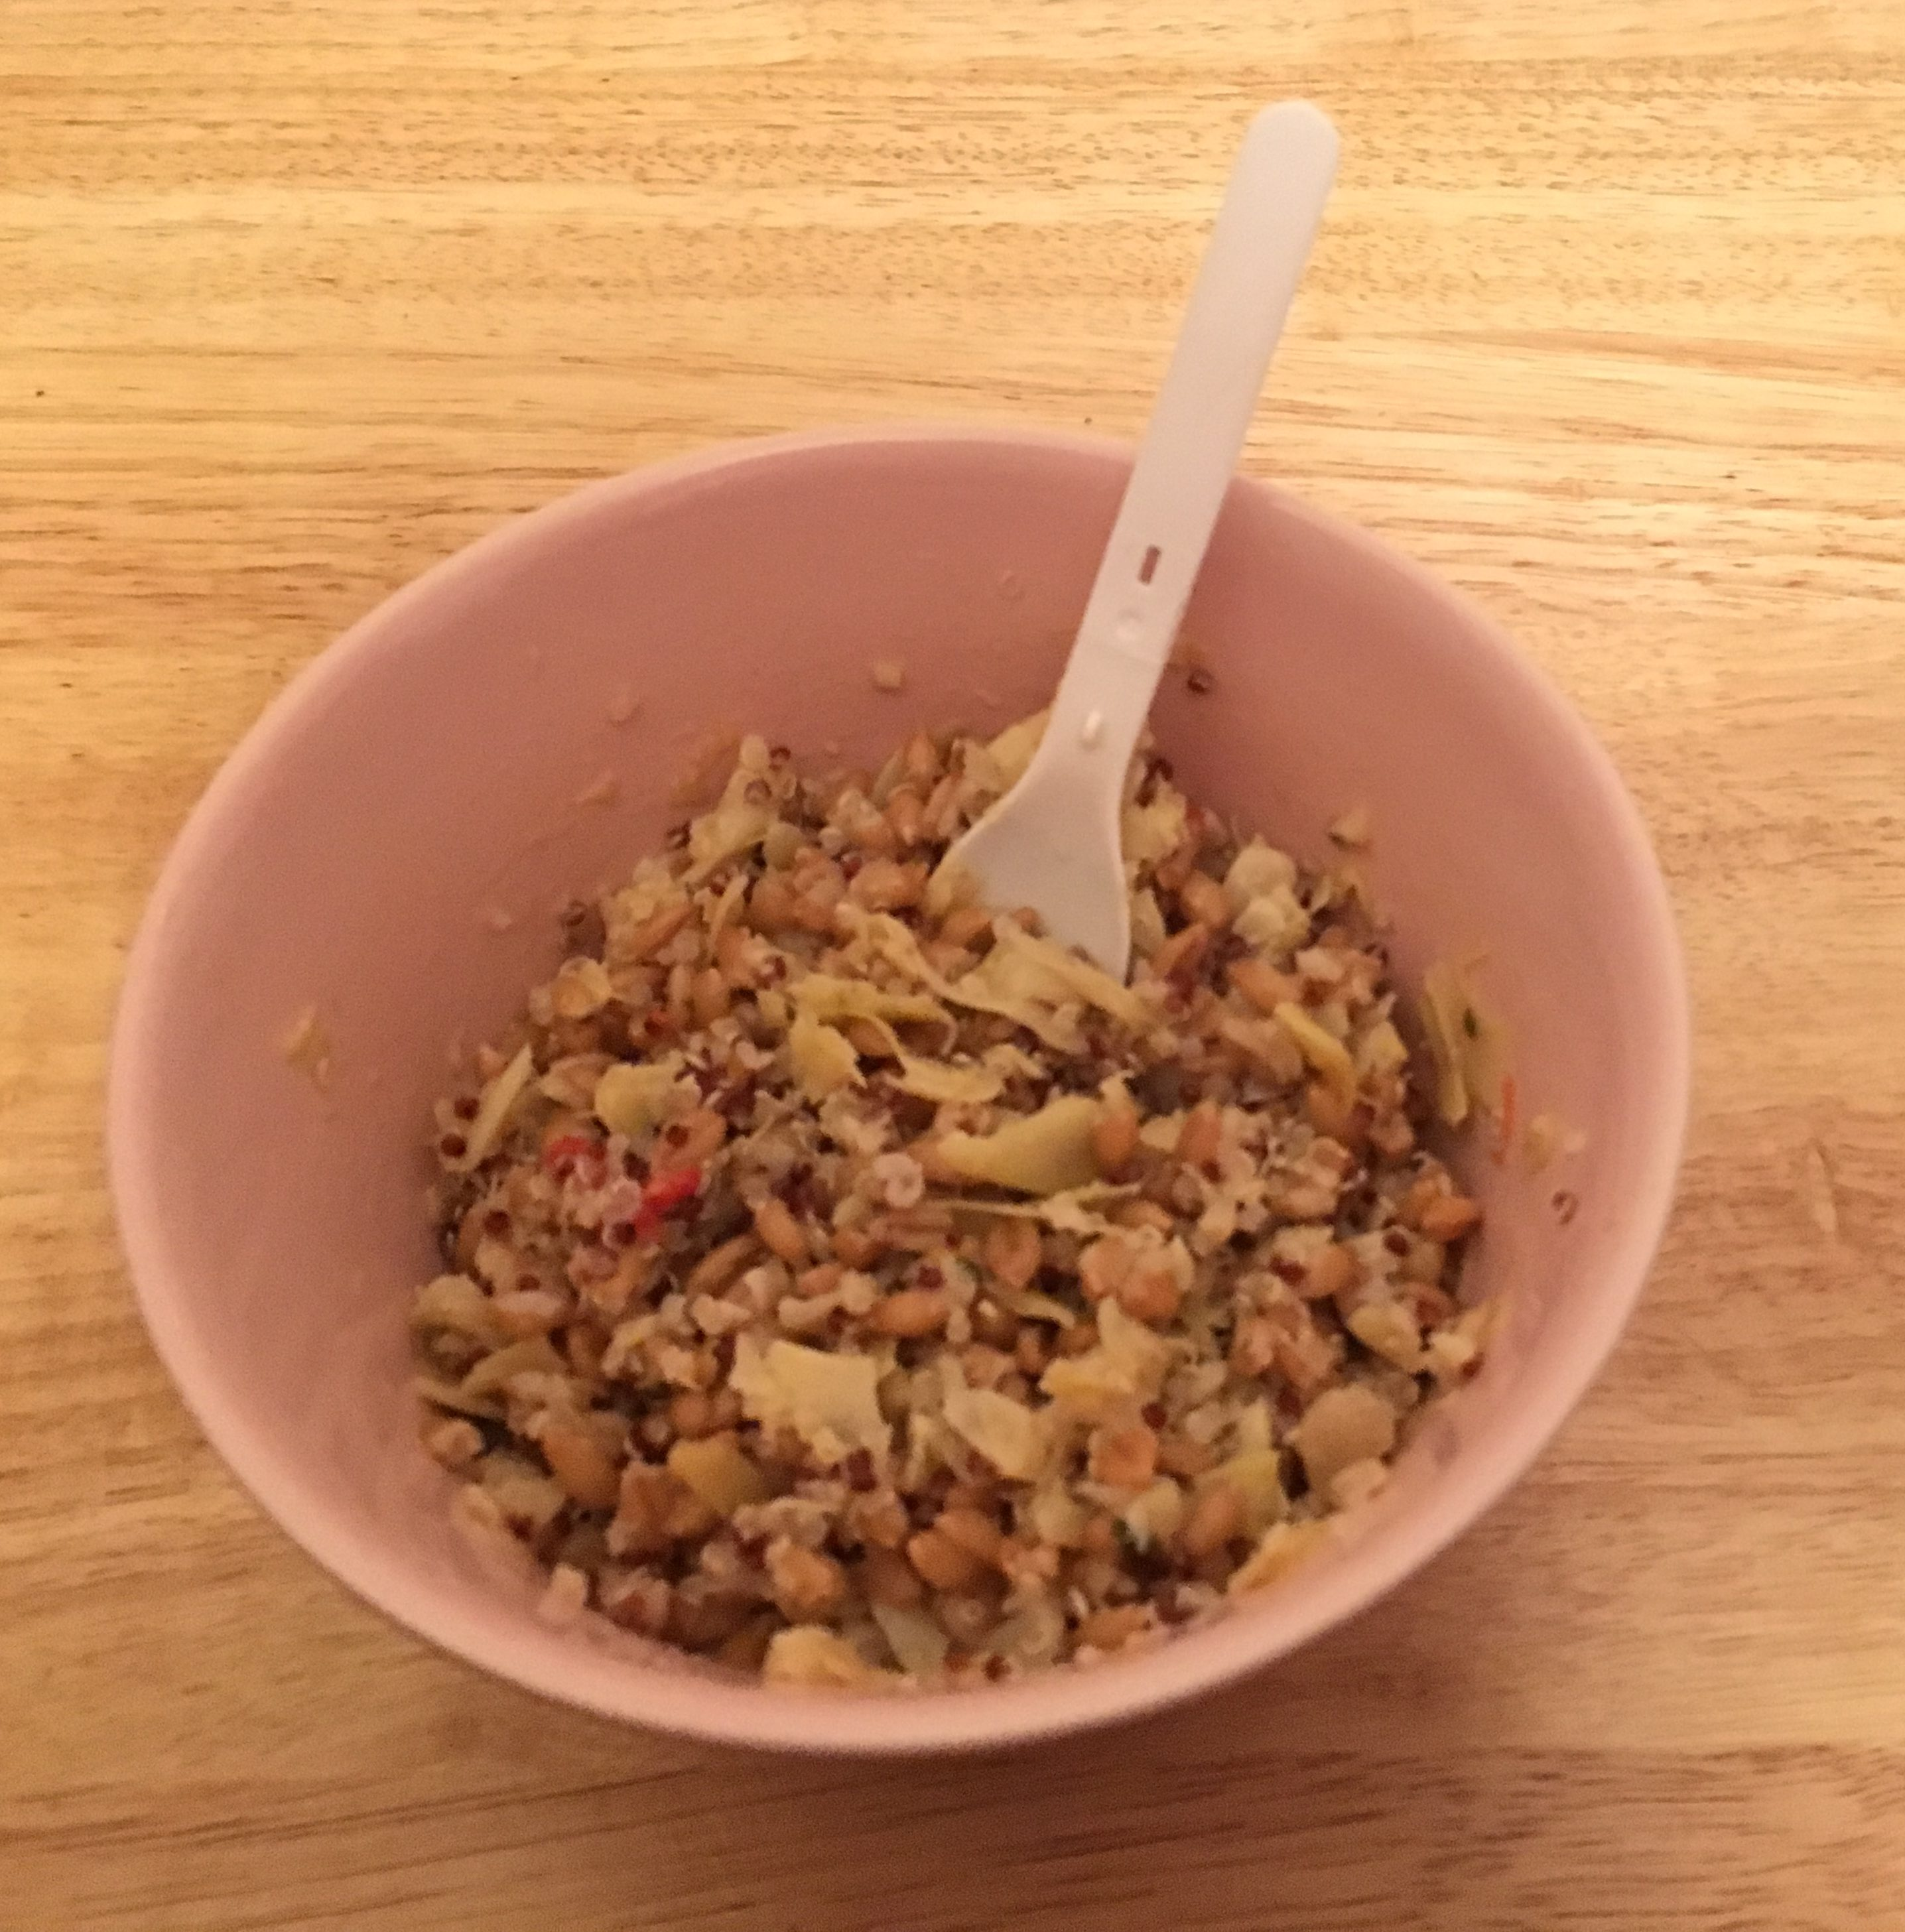 Cucina & Amore Inc Product Review Cucina Amore Ready To Eat Farro Meals The